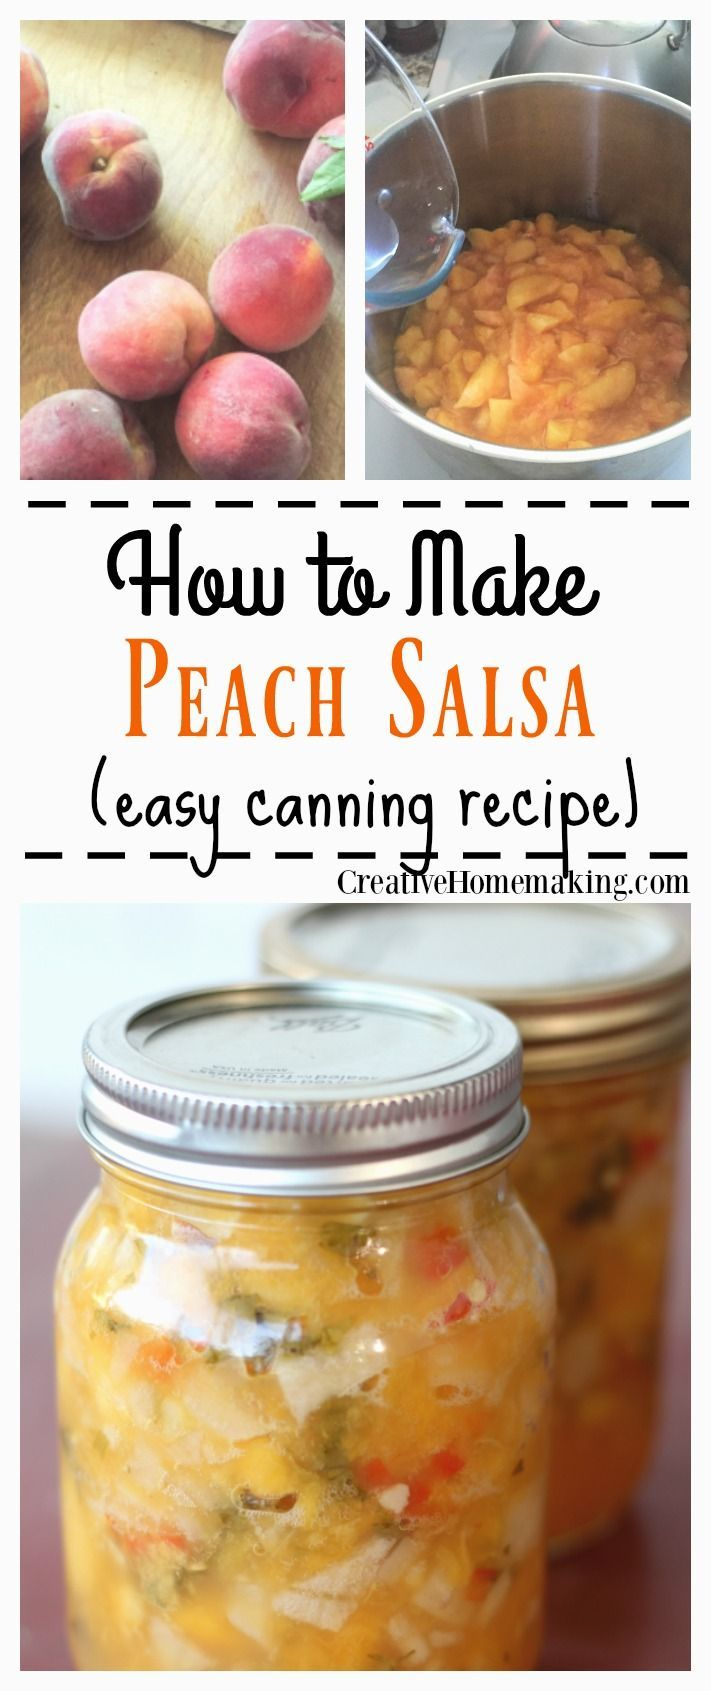 Easy recipe for canning homemade peach salsa.